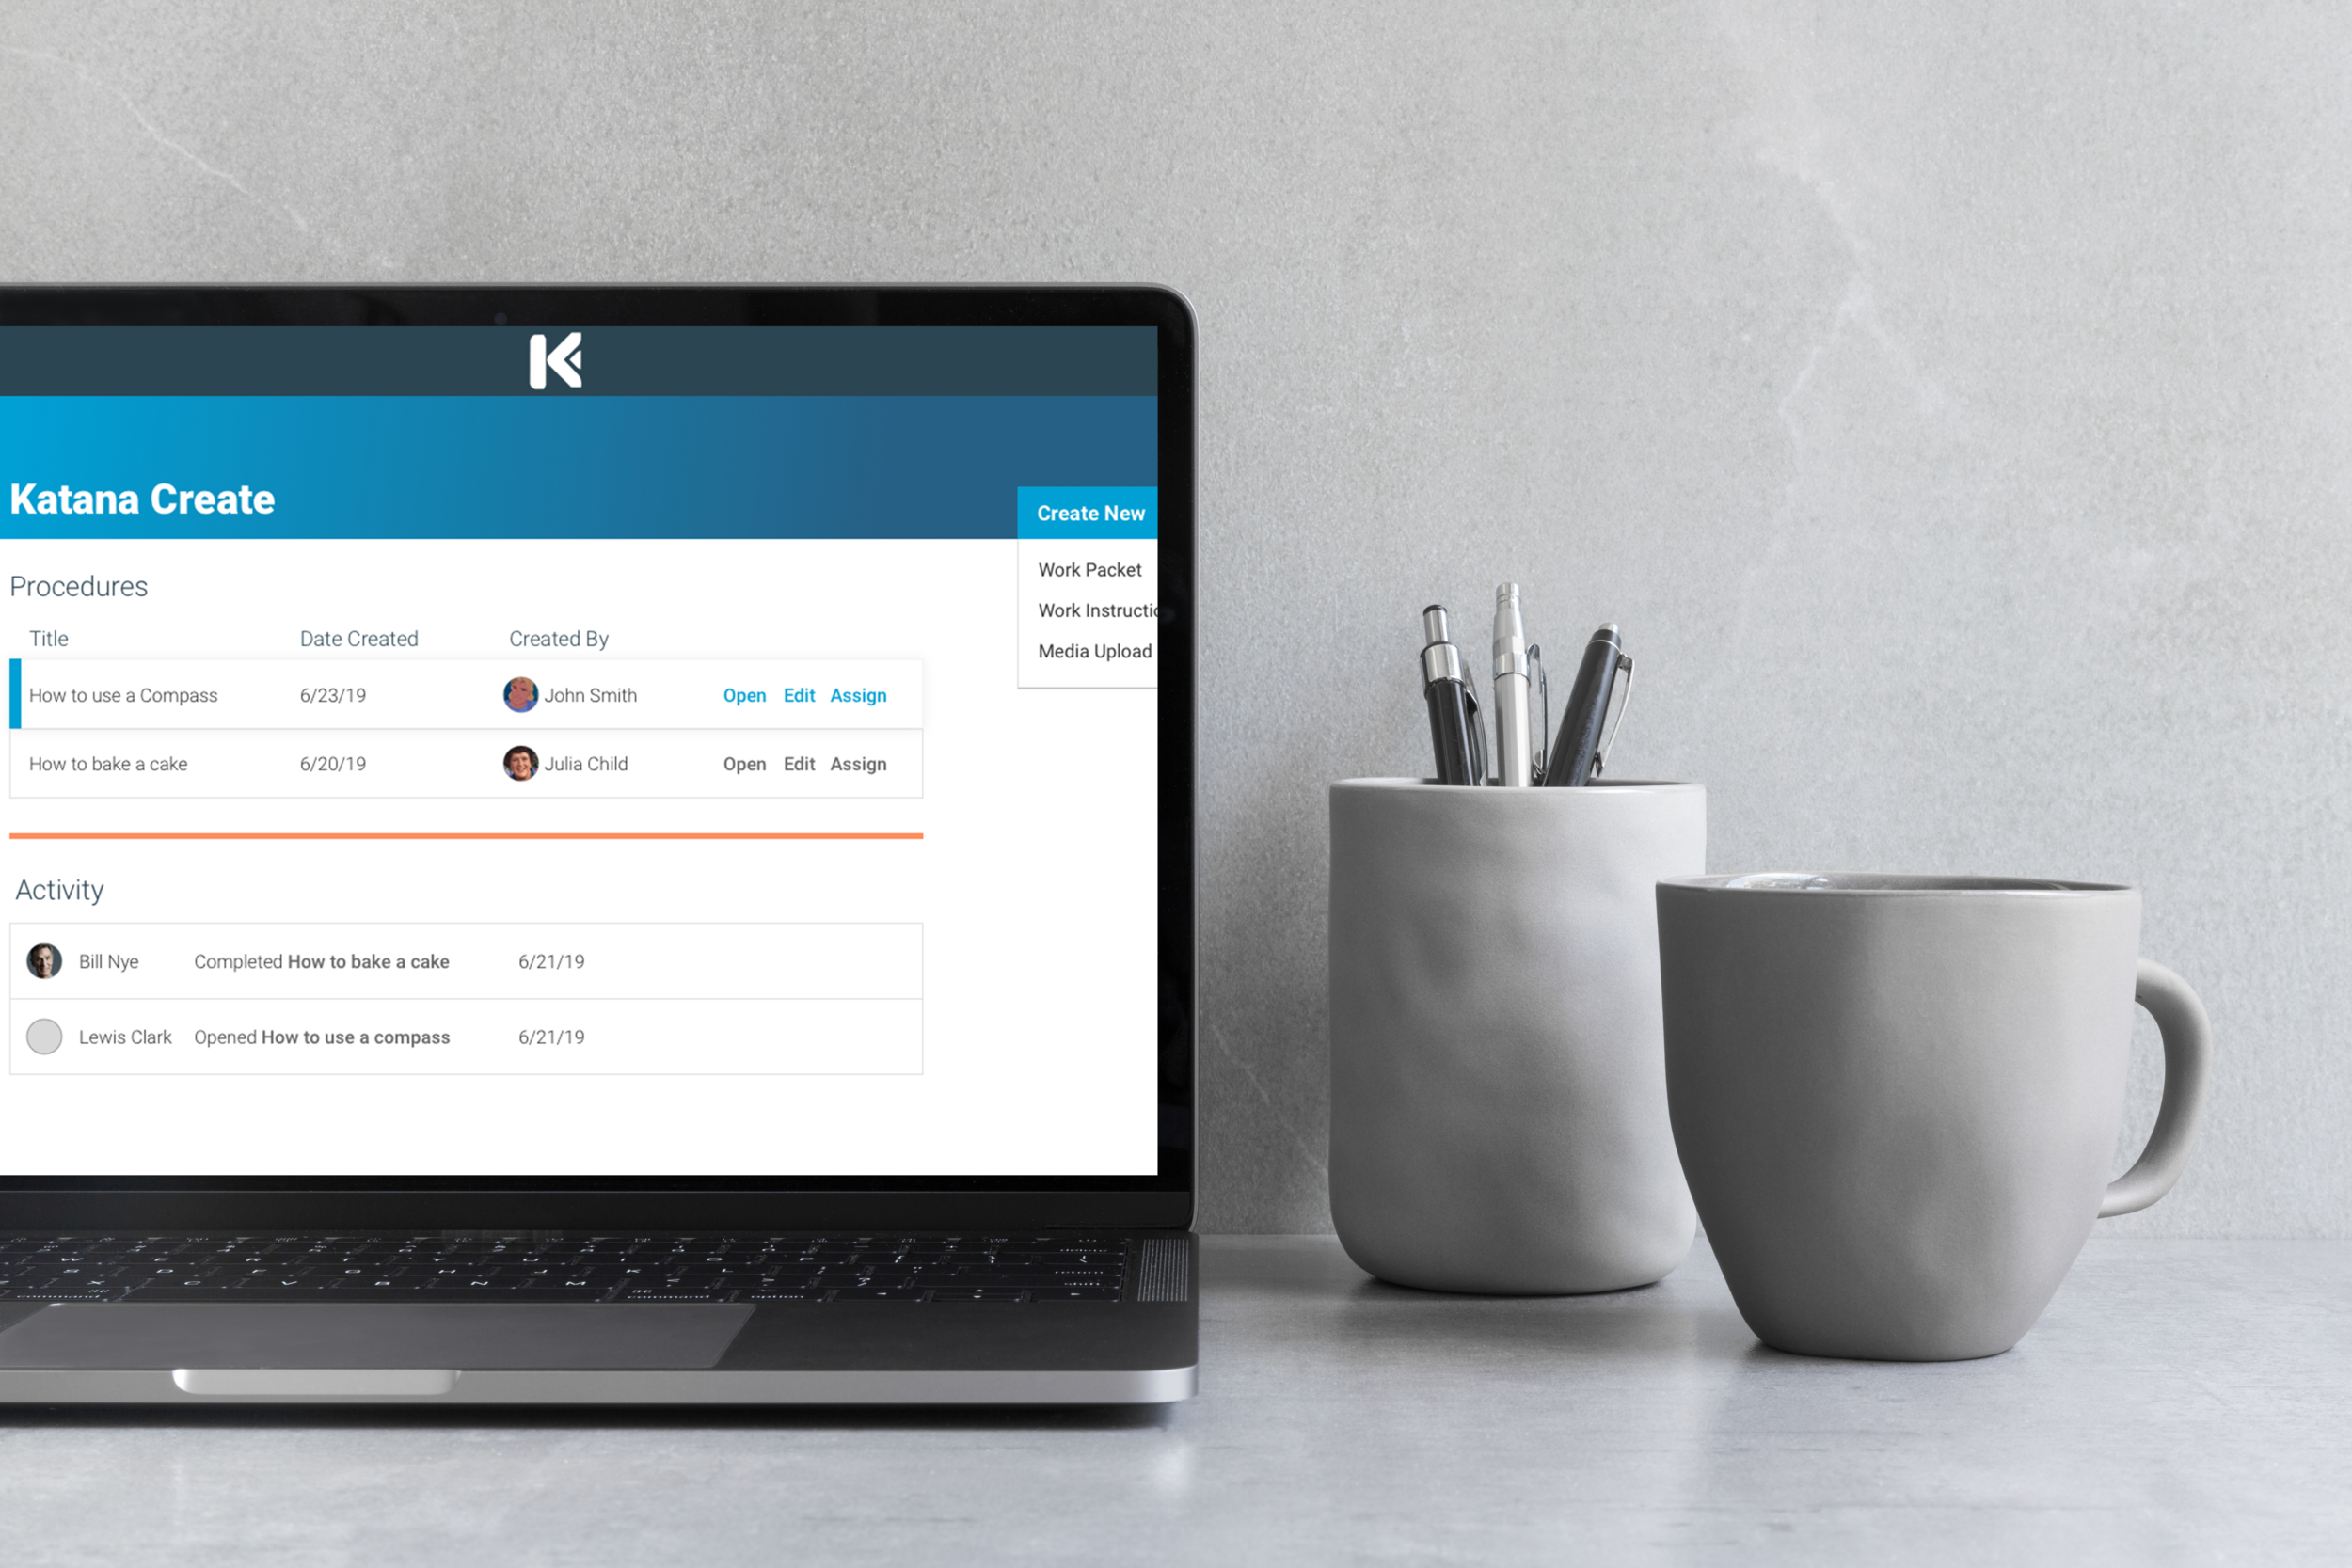 Katana Pro - Use the web app, Katana Pro, to create content, templates and assign work packages to users on mobile or headset.